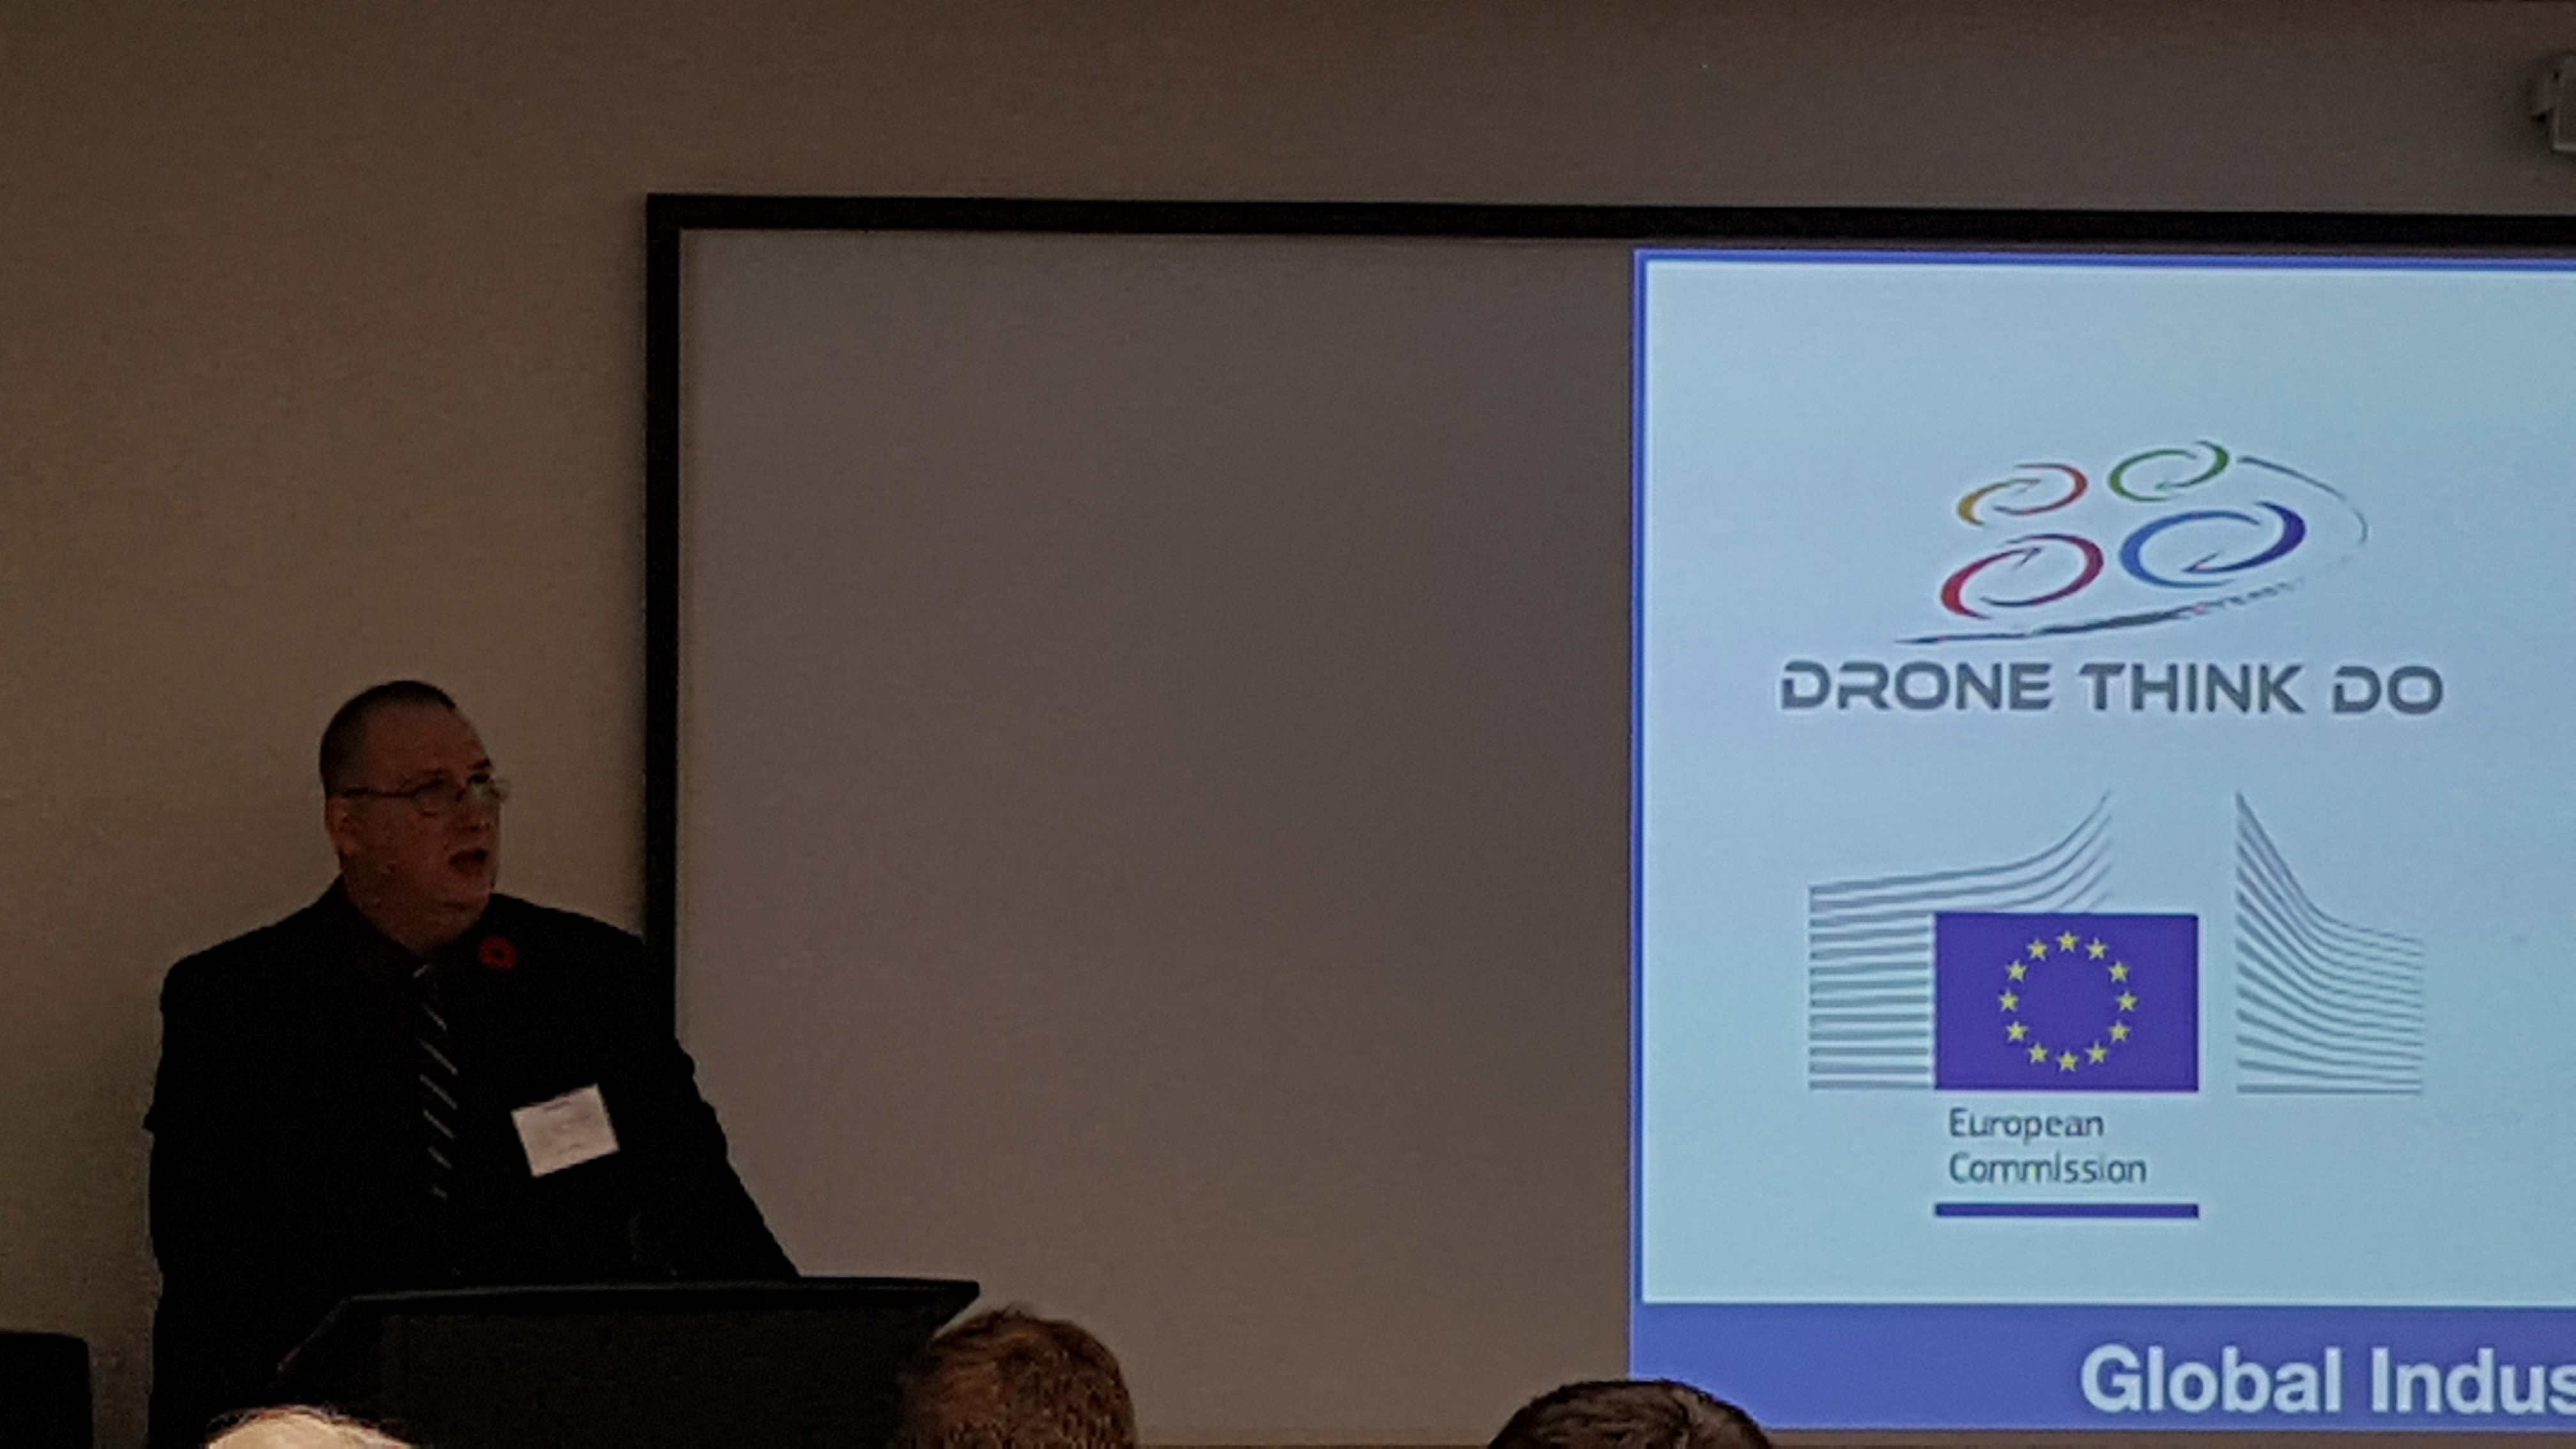 James Castle - President and director of Terranova Defense Solutions and CEO of Drone Think Do Canada